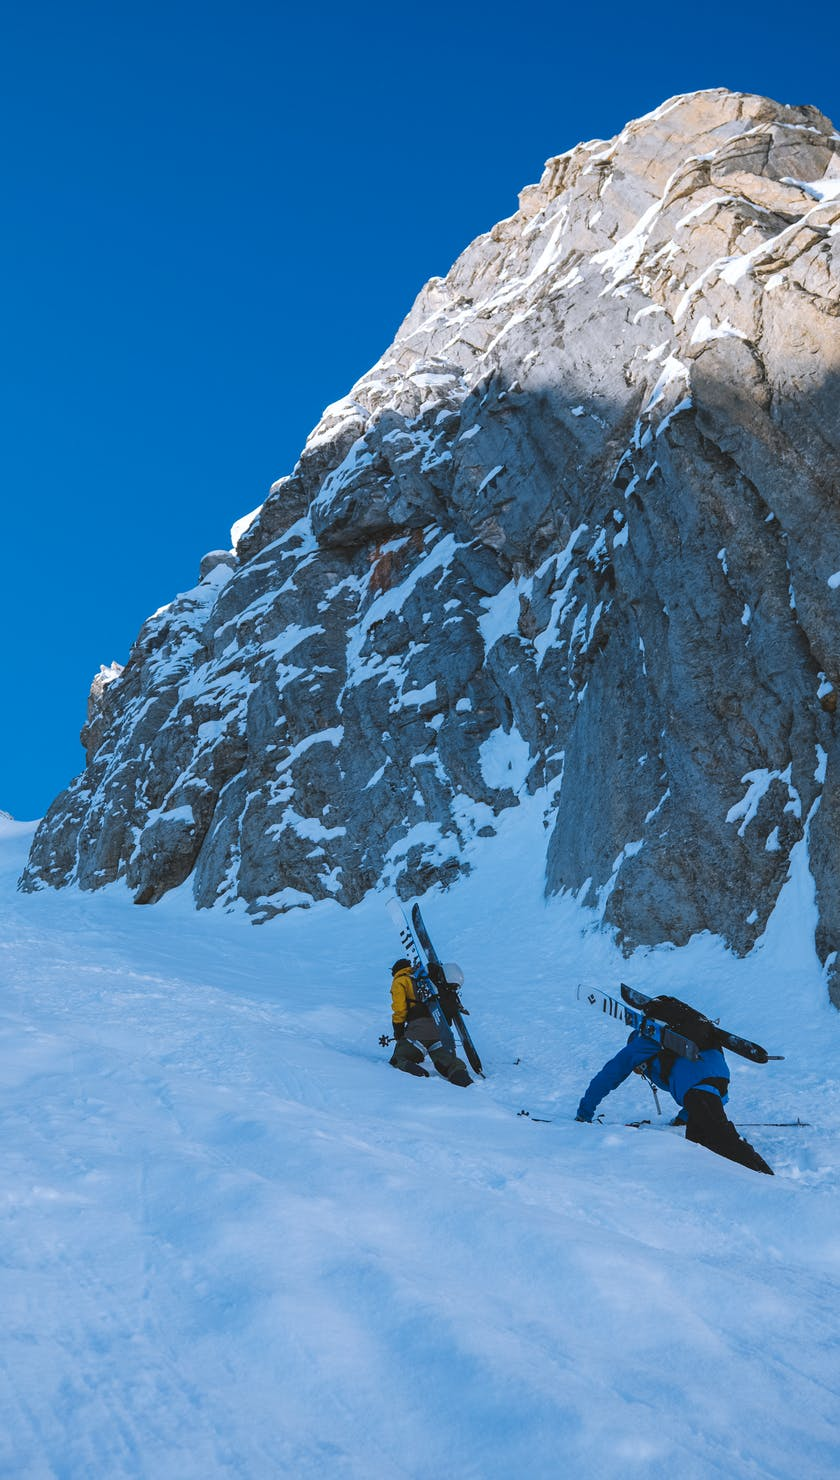 Black Diamond athlete Jérémy Prevost and a friend boot packing up couloir.